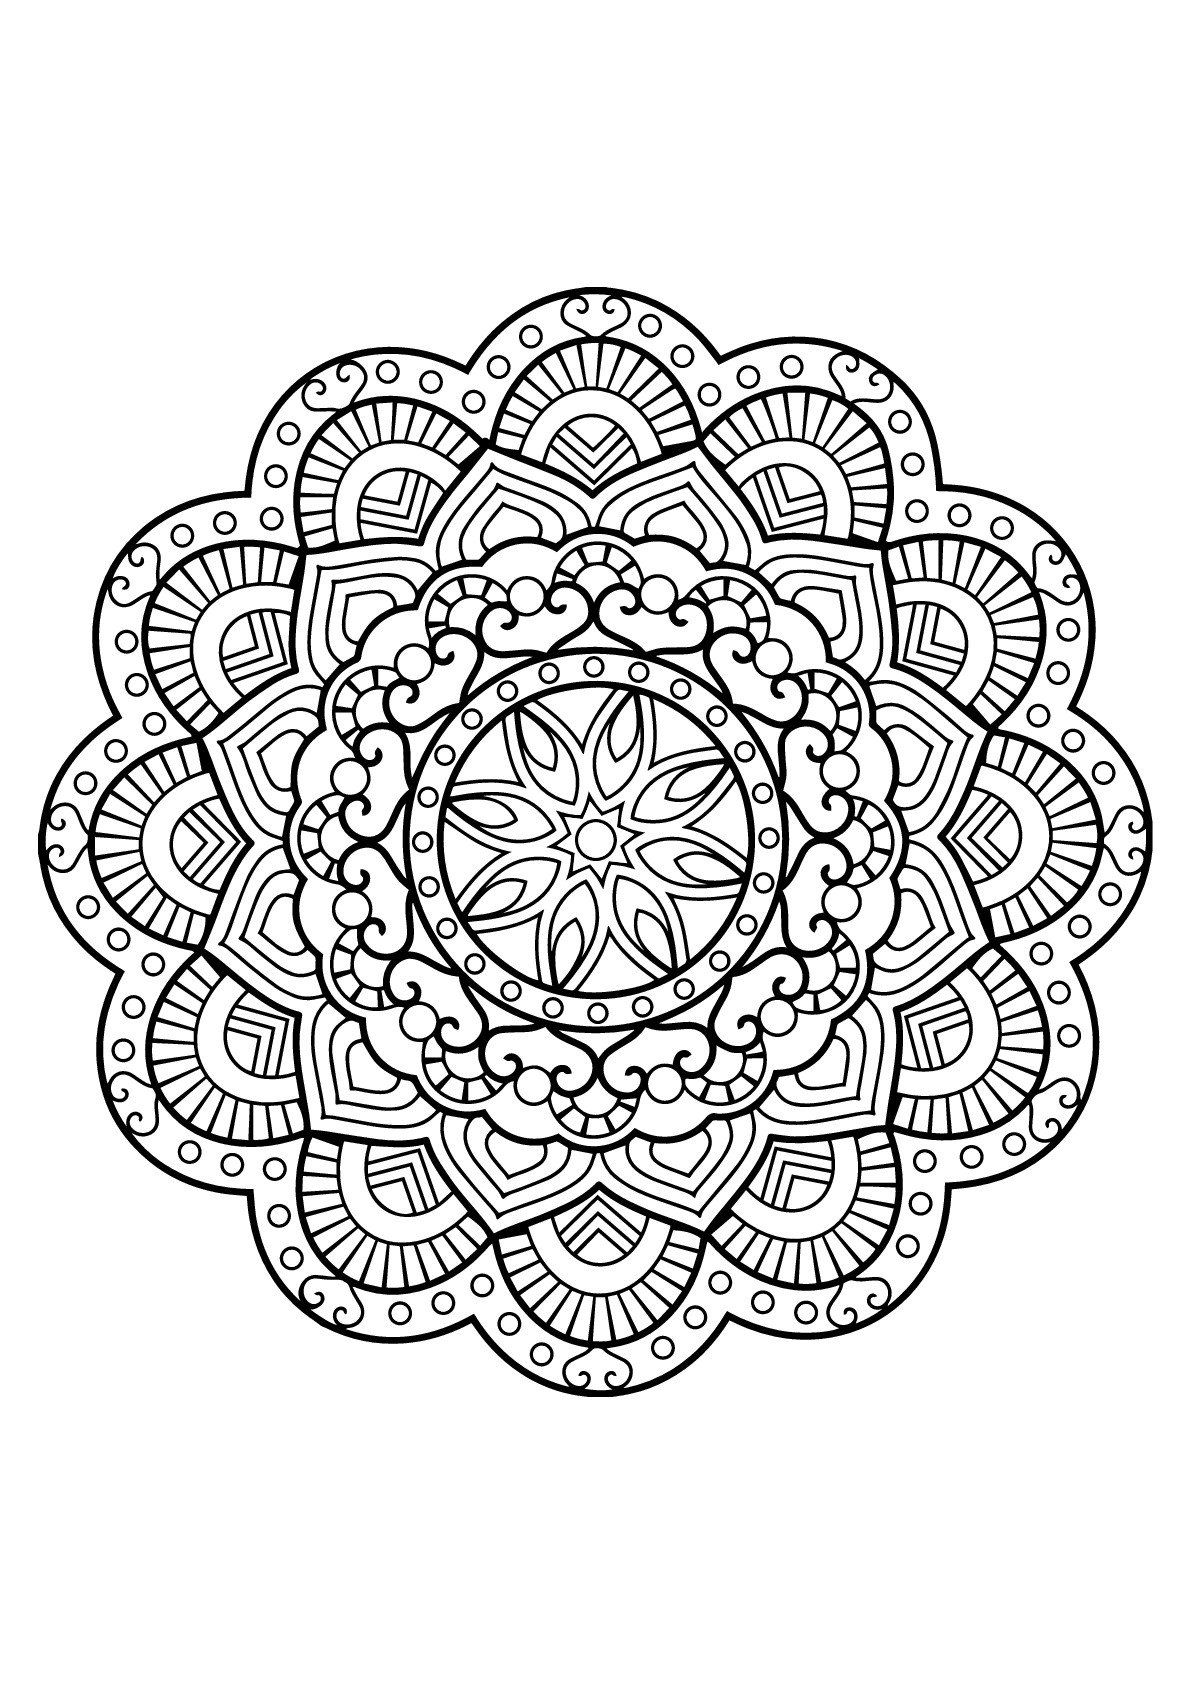 Mandala Online Coloring Pages Coloring Pages Coloring Bookr Adults Free Mandala From Mandala Coloring Pages Mandala Coloring Books Mandala Coloring